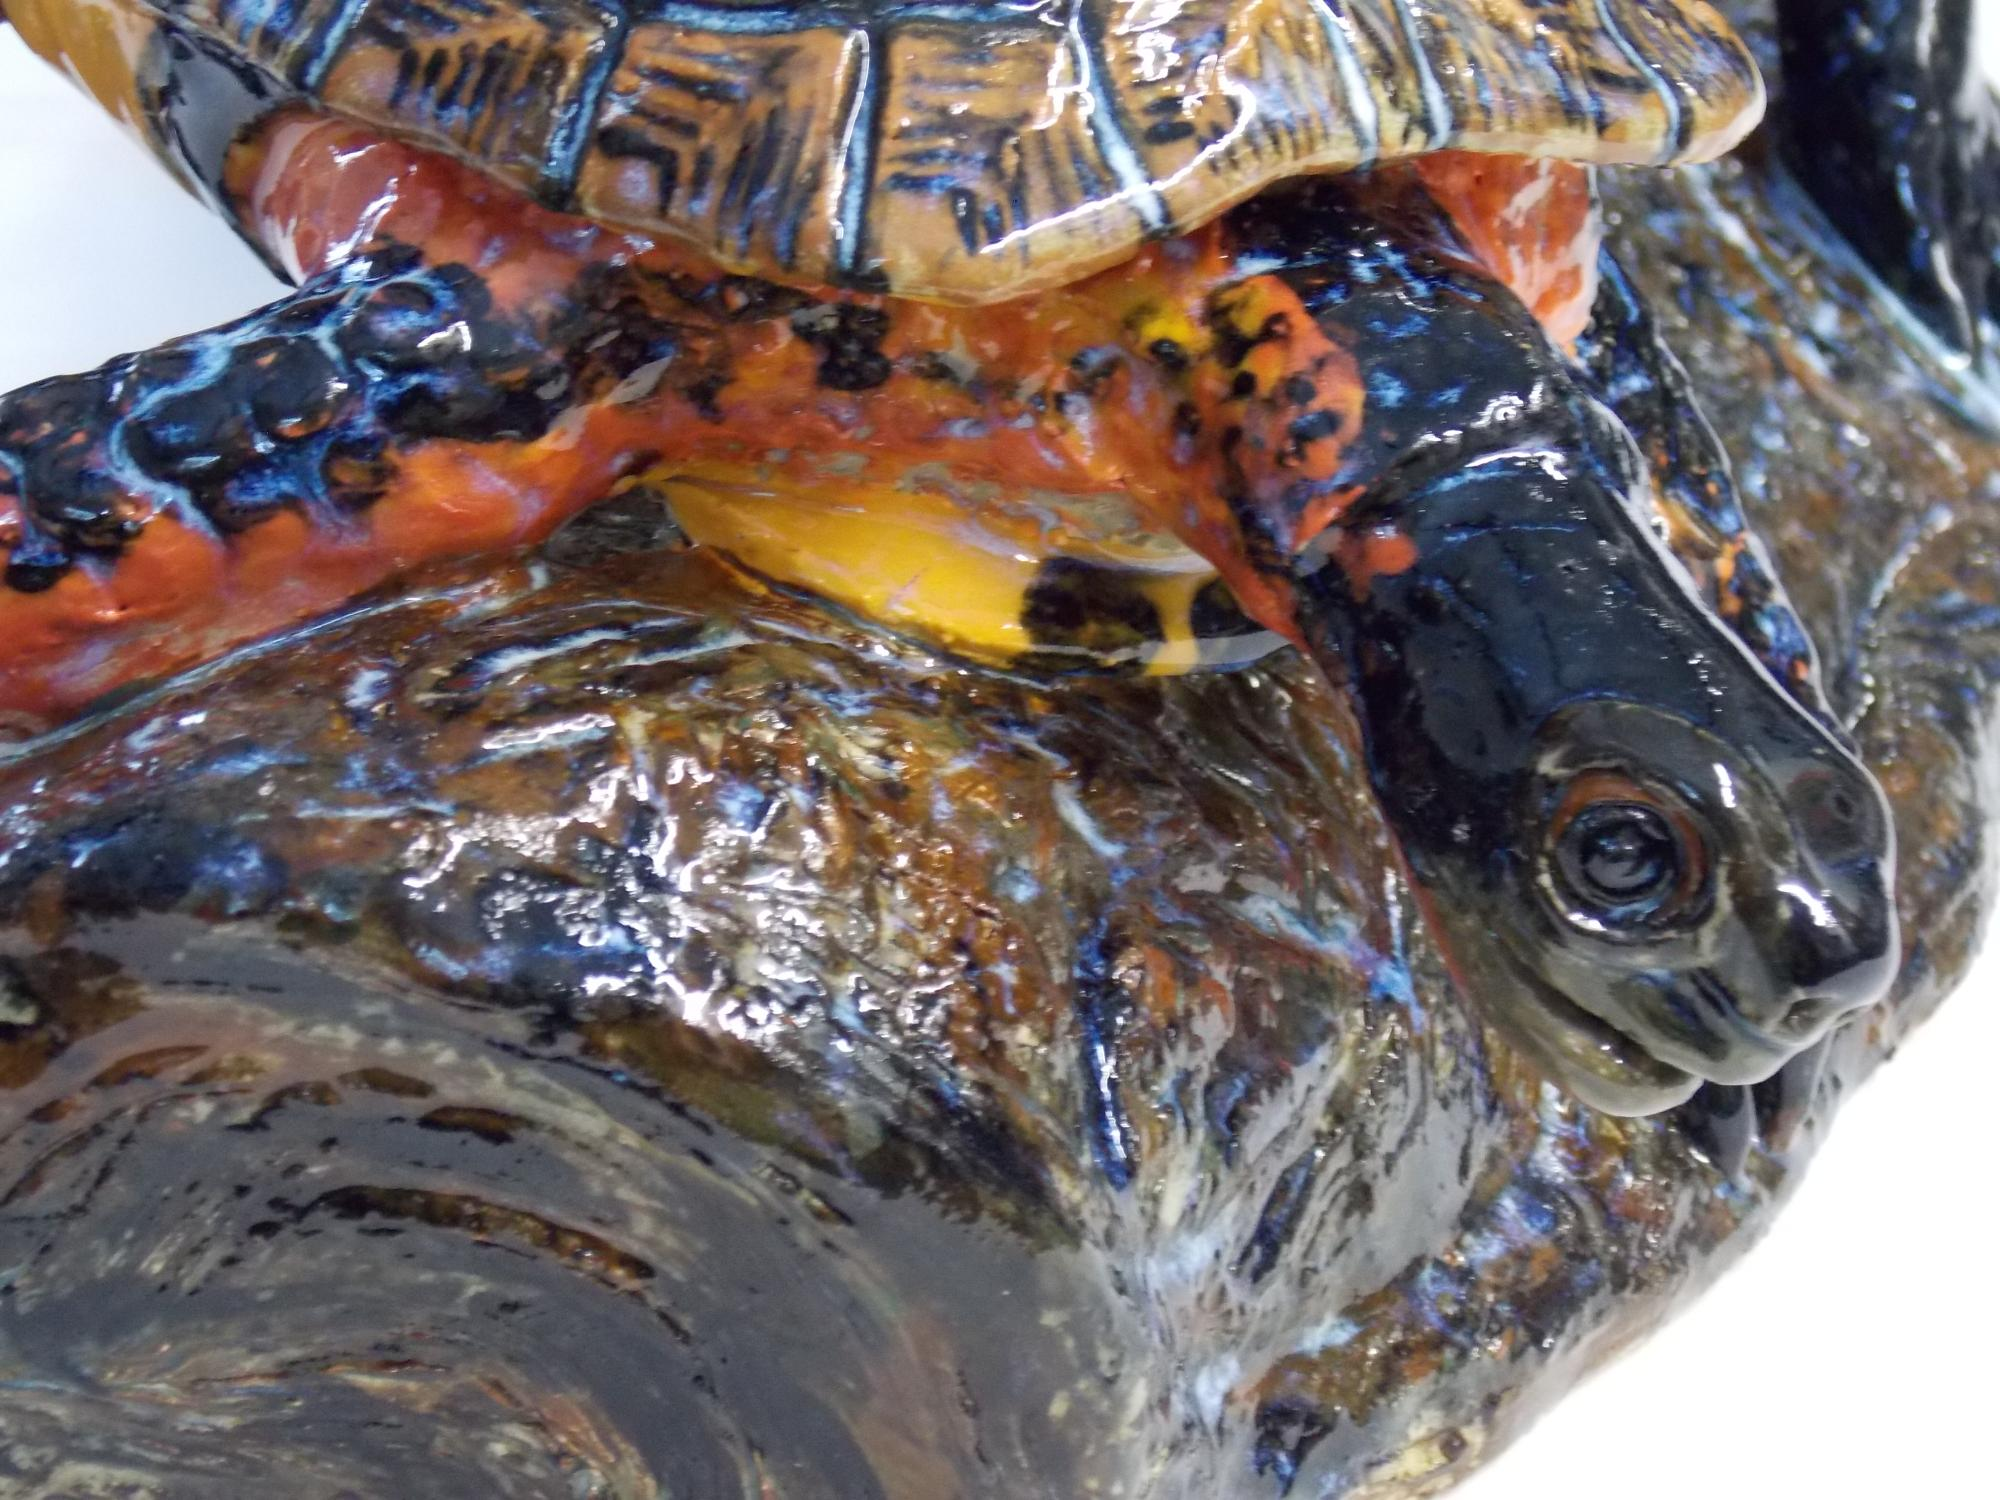 Wood_Turtles_on_log__detail__Muhich_2015__cone_6_ceramic__21_x_9_x_8_inches.JPG